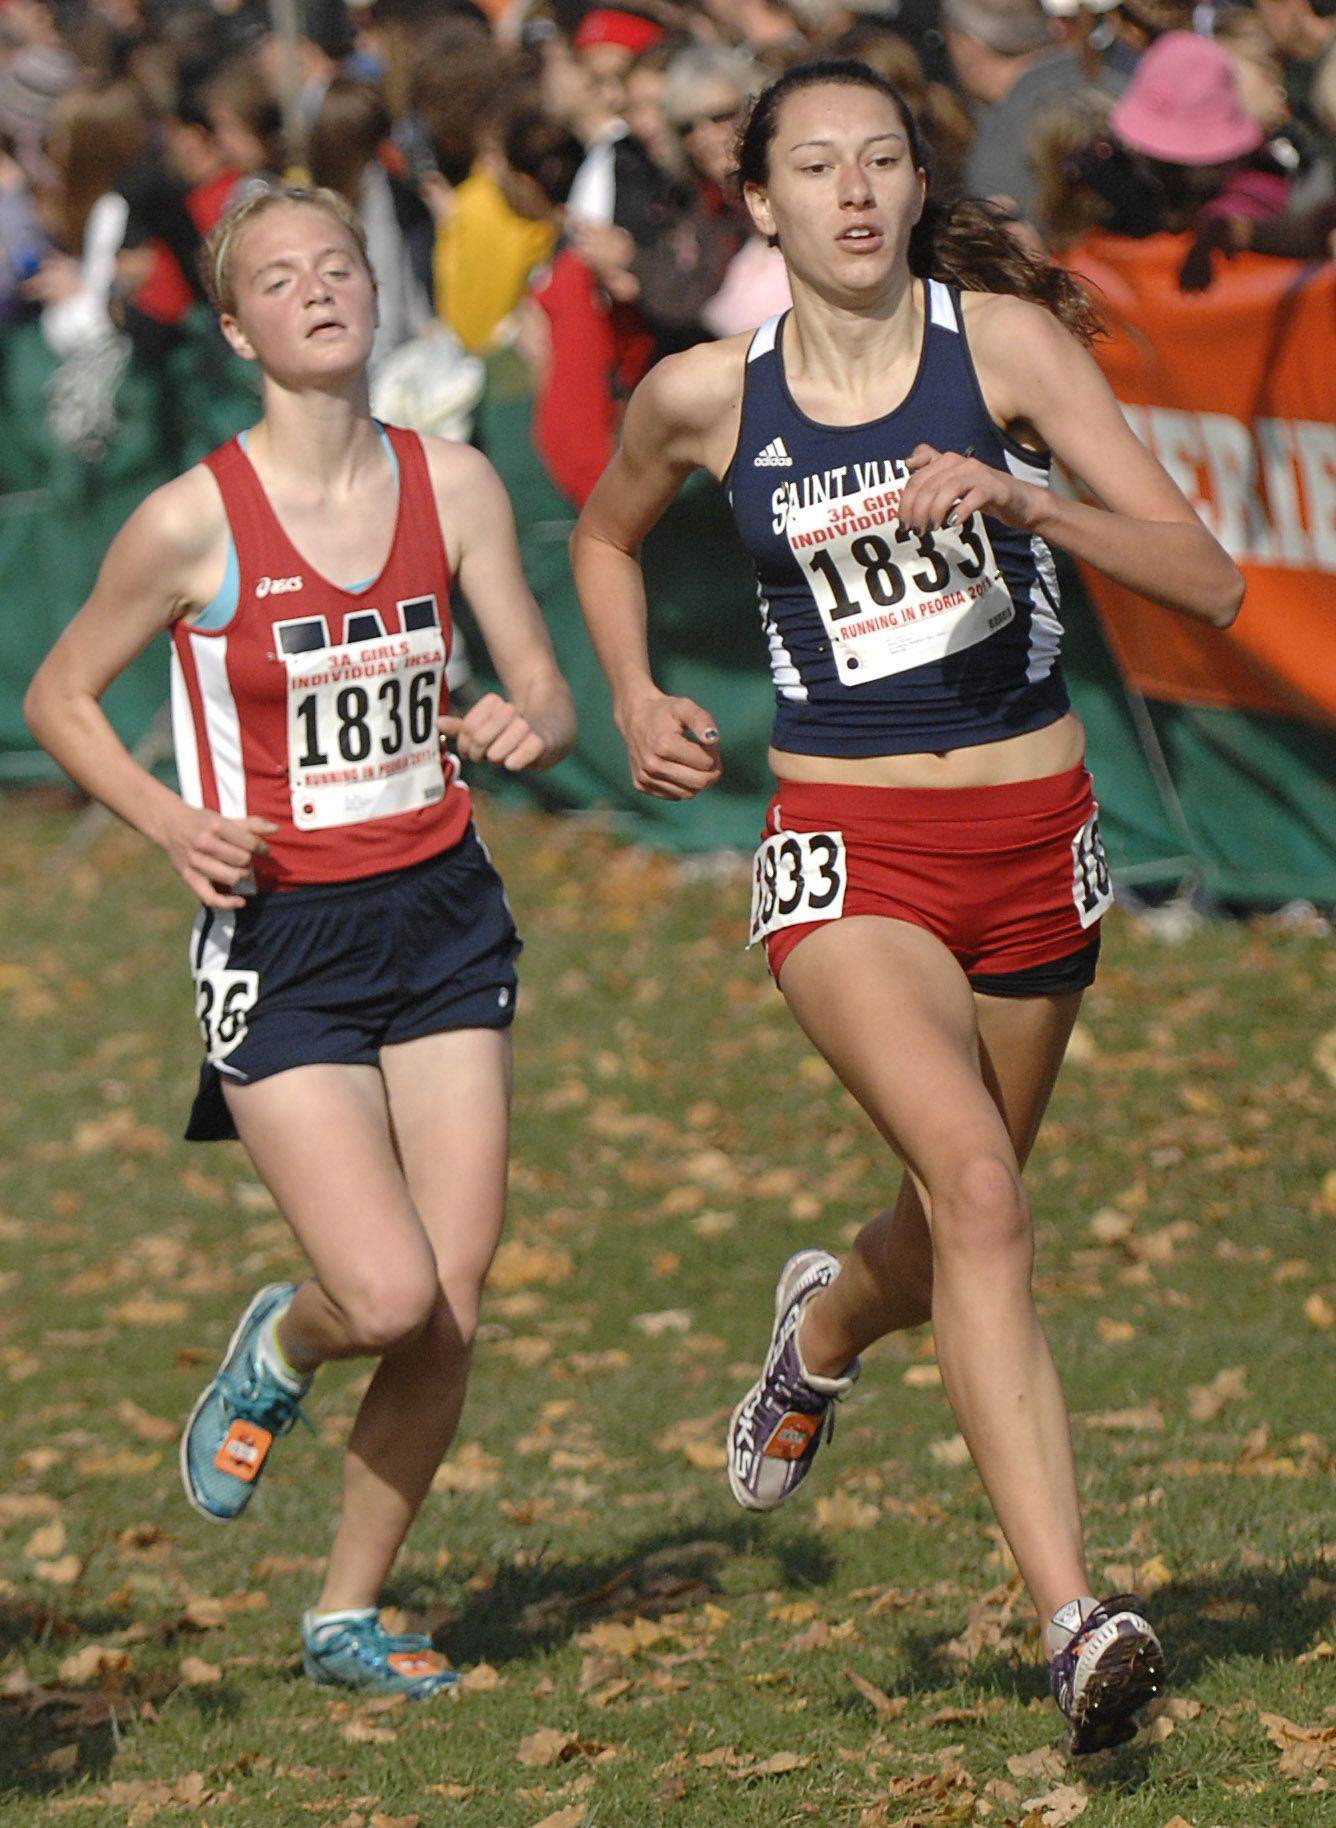 West Aurora's Rachel Cavender and St. Viator's Hanna Winter approach the finish line in the 3A state cross country final. Cavender took 21st place and Winter took 19th place.